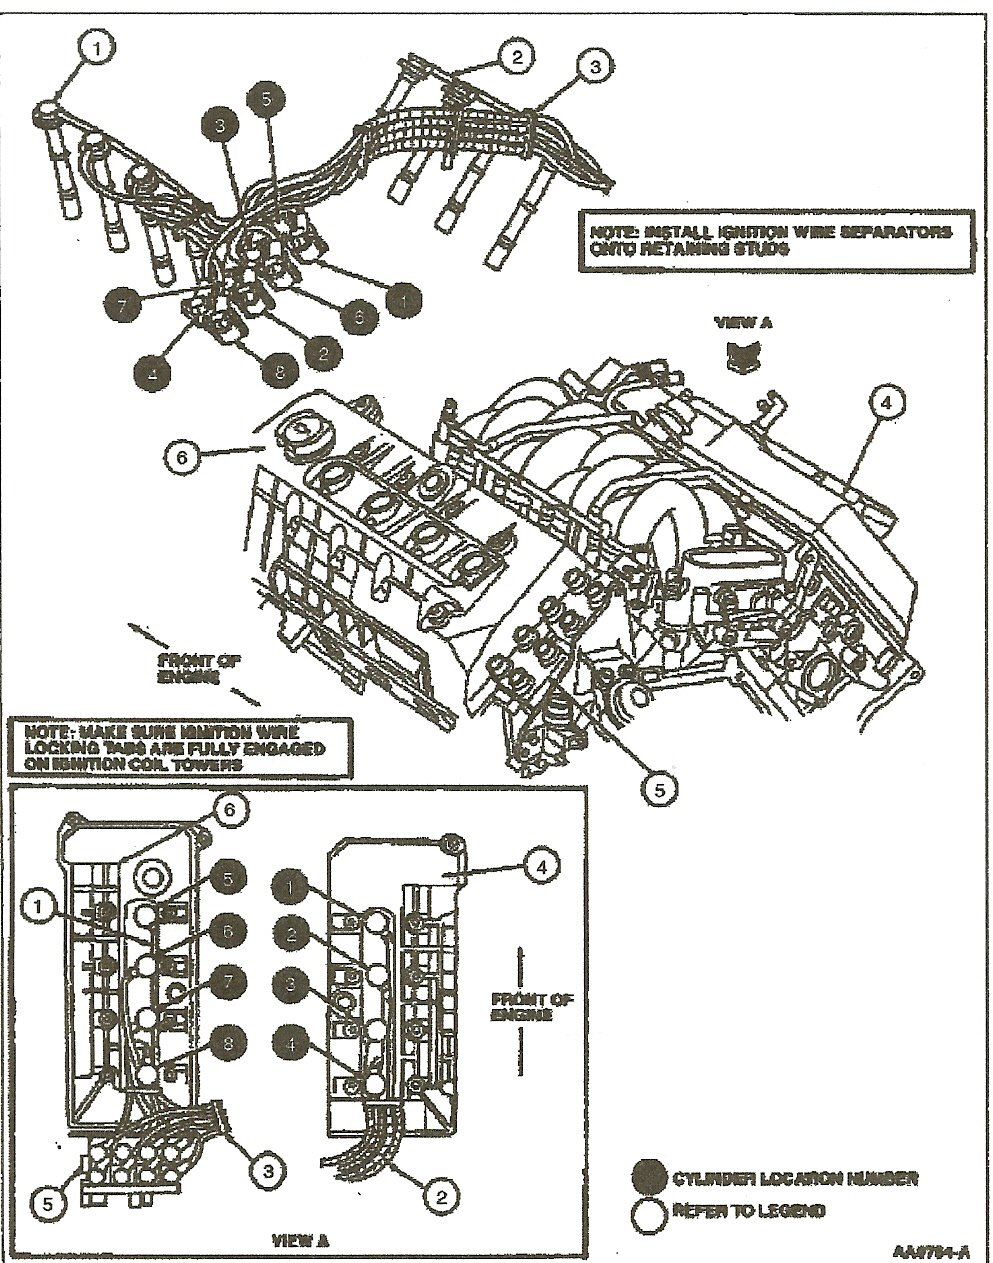 2000 lincoln continental engine diagram i have a 1997 lincoln continental and i need to install ... 1975 lincoln continental engine diagram